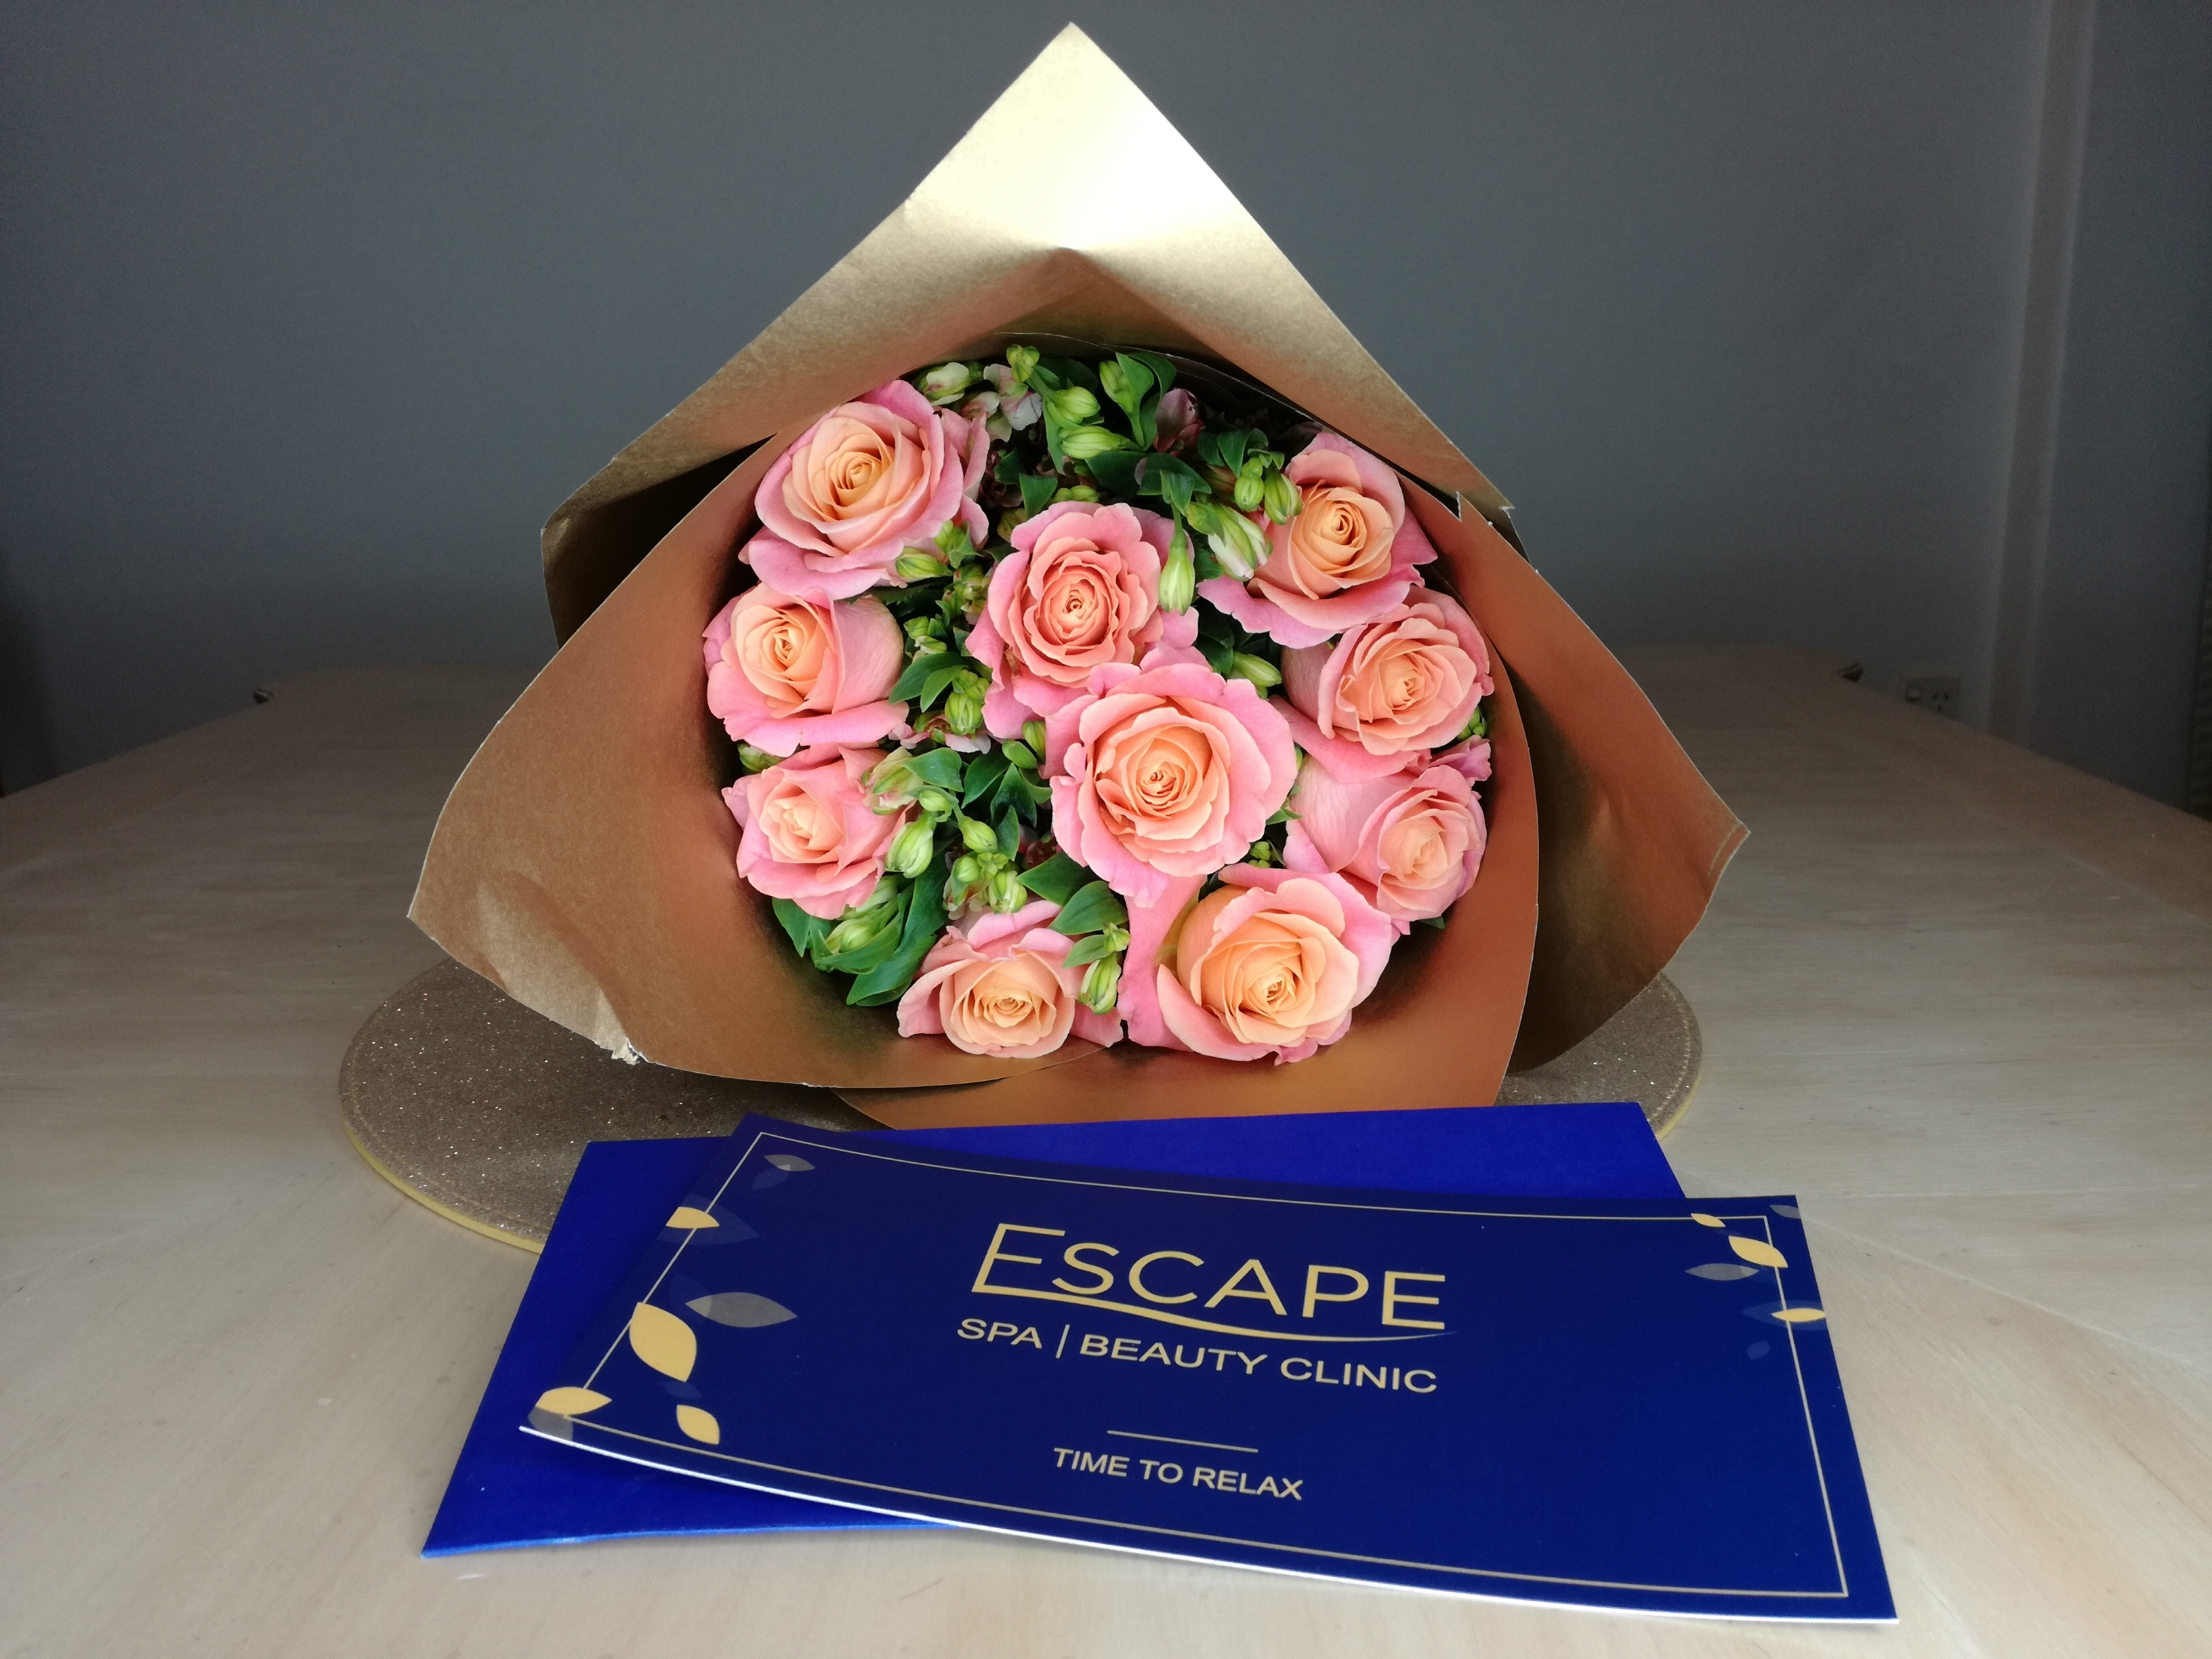 Your Escape Spa | Beauty Clinic, we have beautiful Gift Vouchers for all our treatments. photo 6